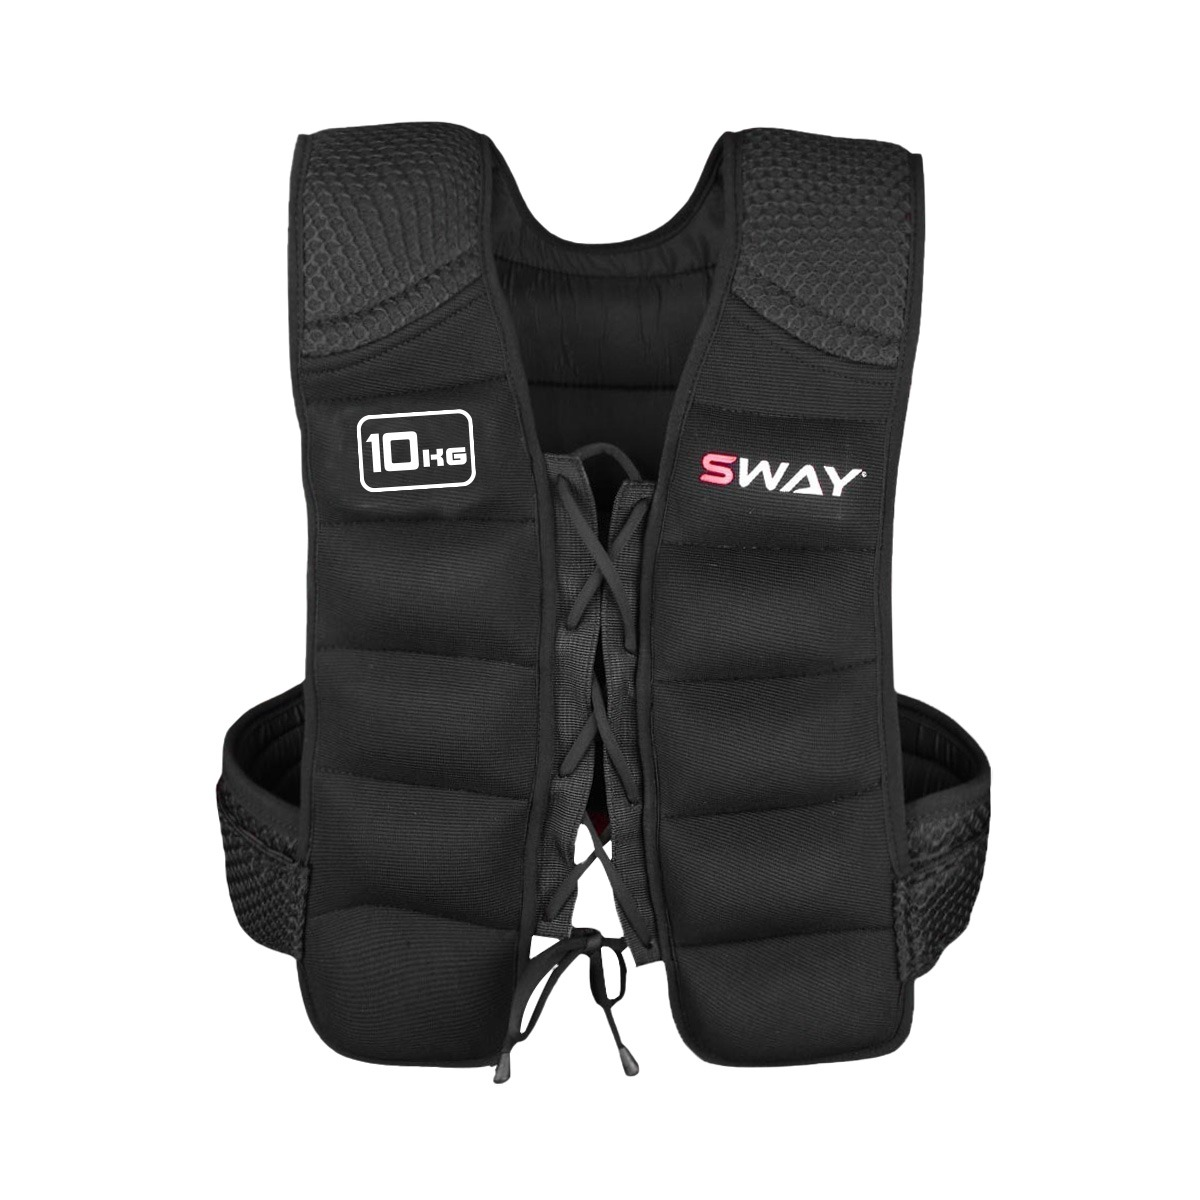 SWAY WEIGHTED VEST 10KG,  Weighted Jacket, Workout, Gym Wears, Core and abdominal Trainers, Weighted Equipment, Running Jacket